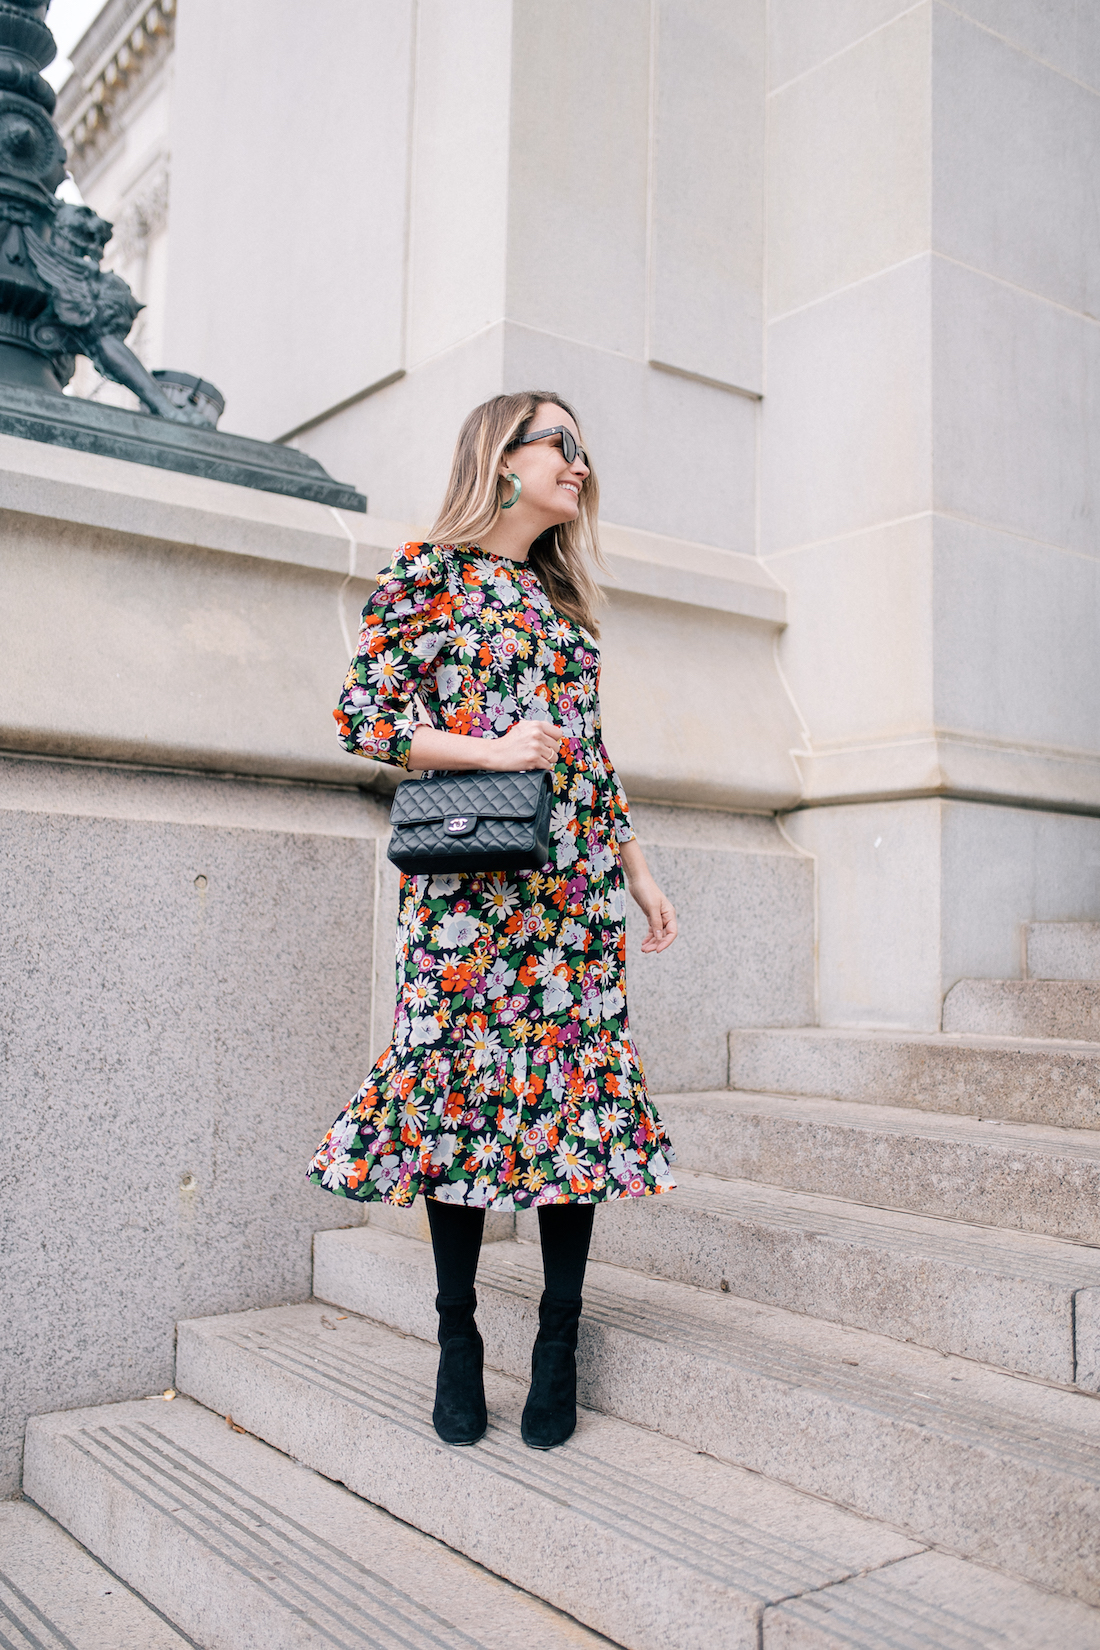 Outfit Details: L. K. Bennett Dress (gifted) // Express Tights// Marion Parke Boots // BaubleBar Green Lucite Hoops // Chanel Bag // Polaroid Sunglasses